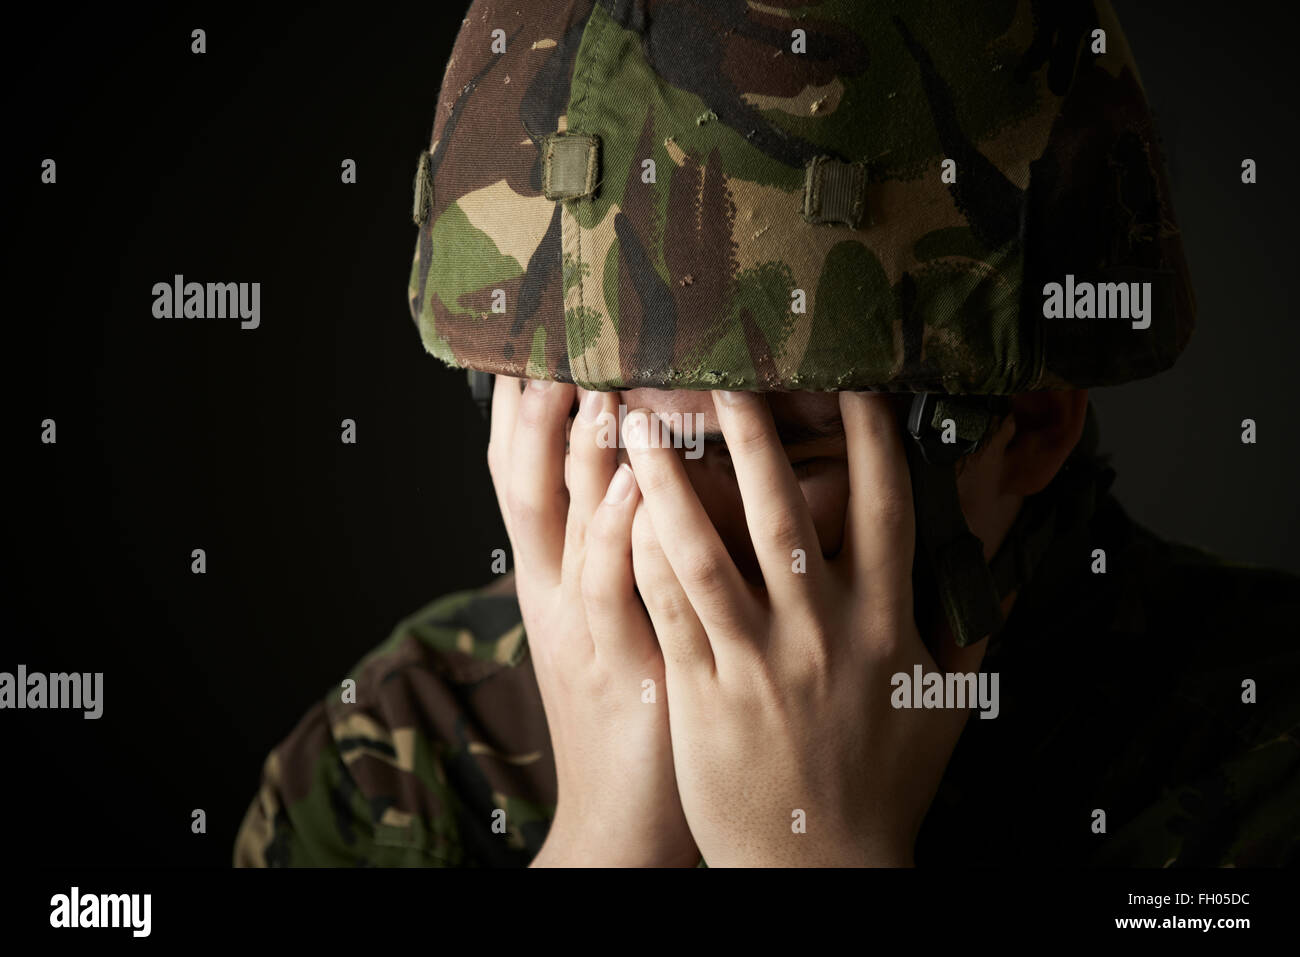 Soldier In Uniform Suffering From Stress - Stock Image